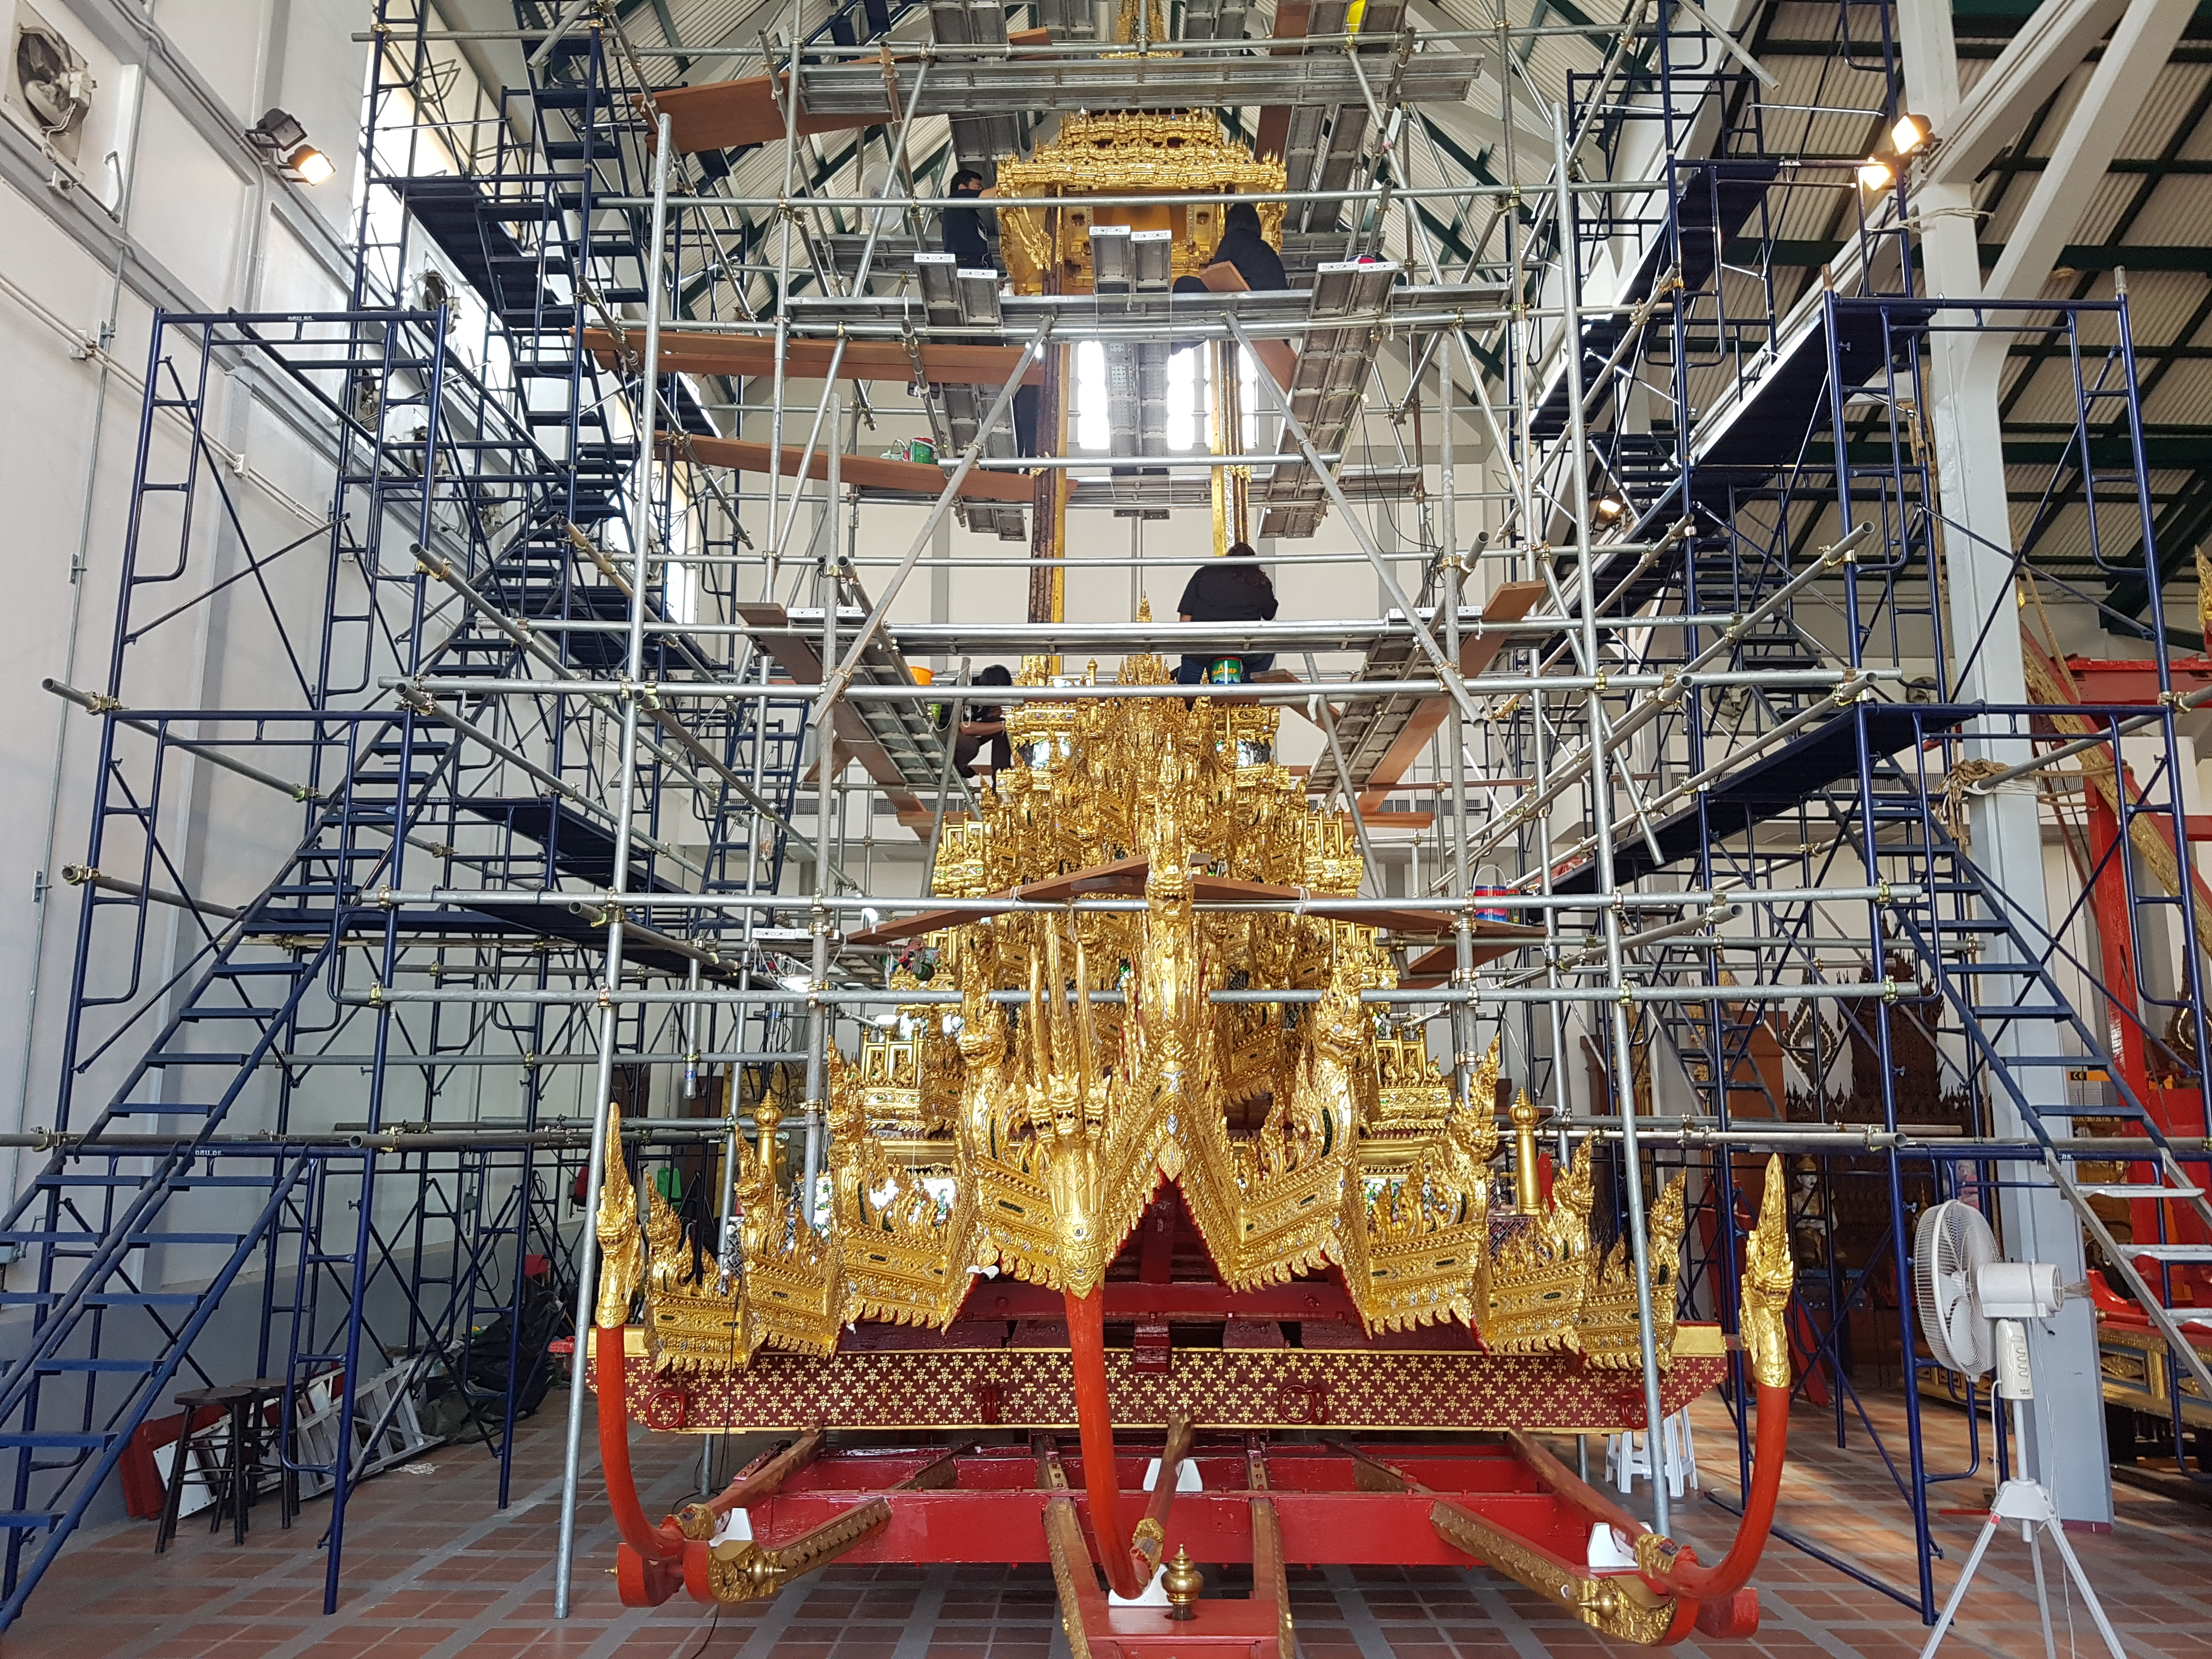 Preparing the Great Chariot of Victory at Chariot Hall in the Bangkok National Museum. This royal chariot was built in 1795-96. Photo taken on April 22, 2017